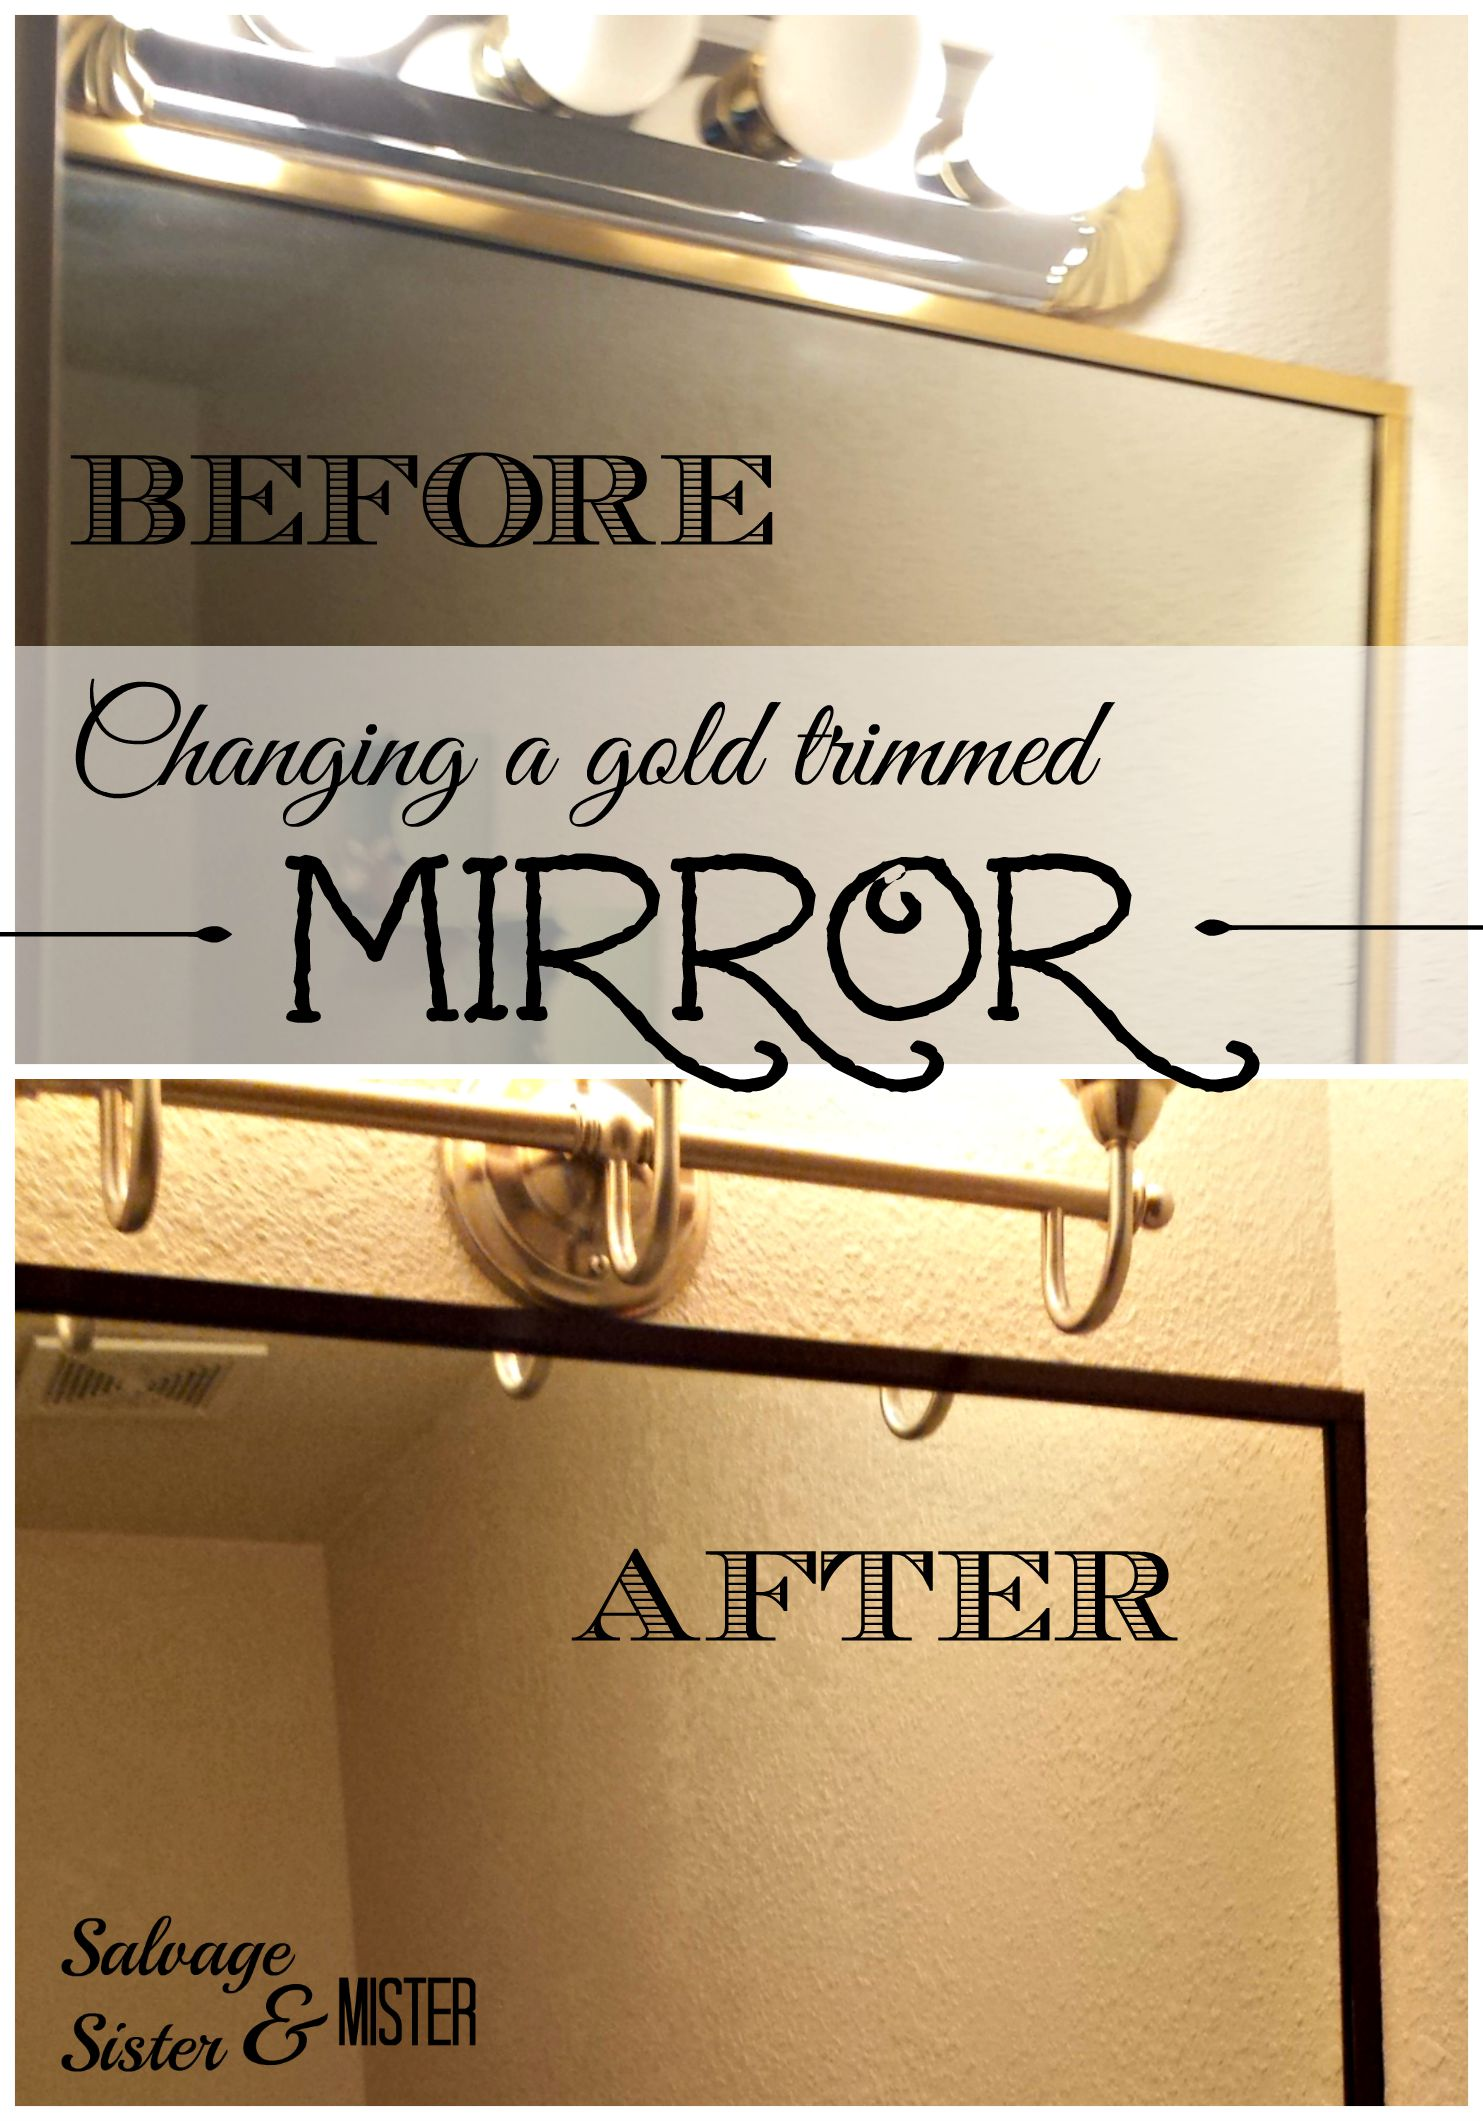 Do you want to change the godl trim on a mirror? Here is an easy fix that doesn't take a bunch of time OR money. www.salvagesisterandmister.com